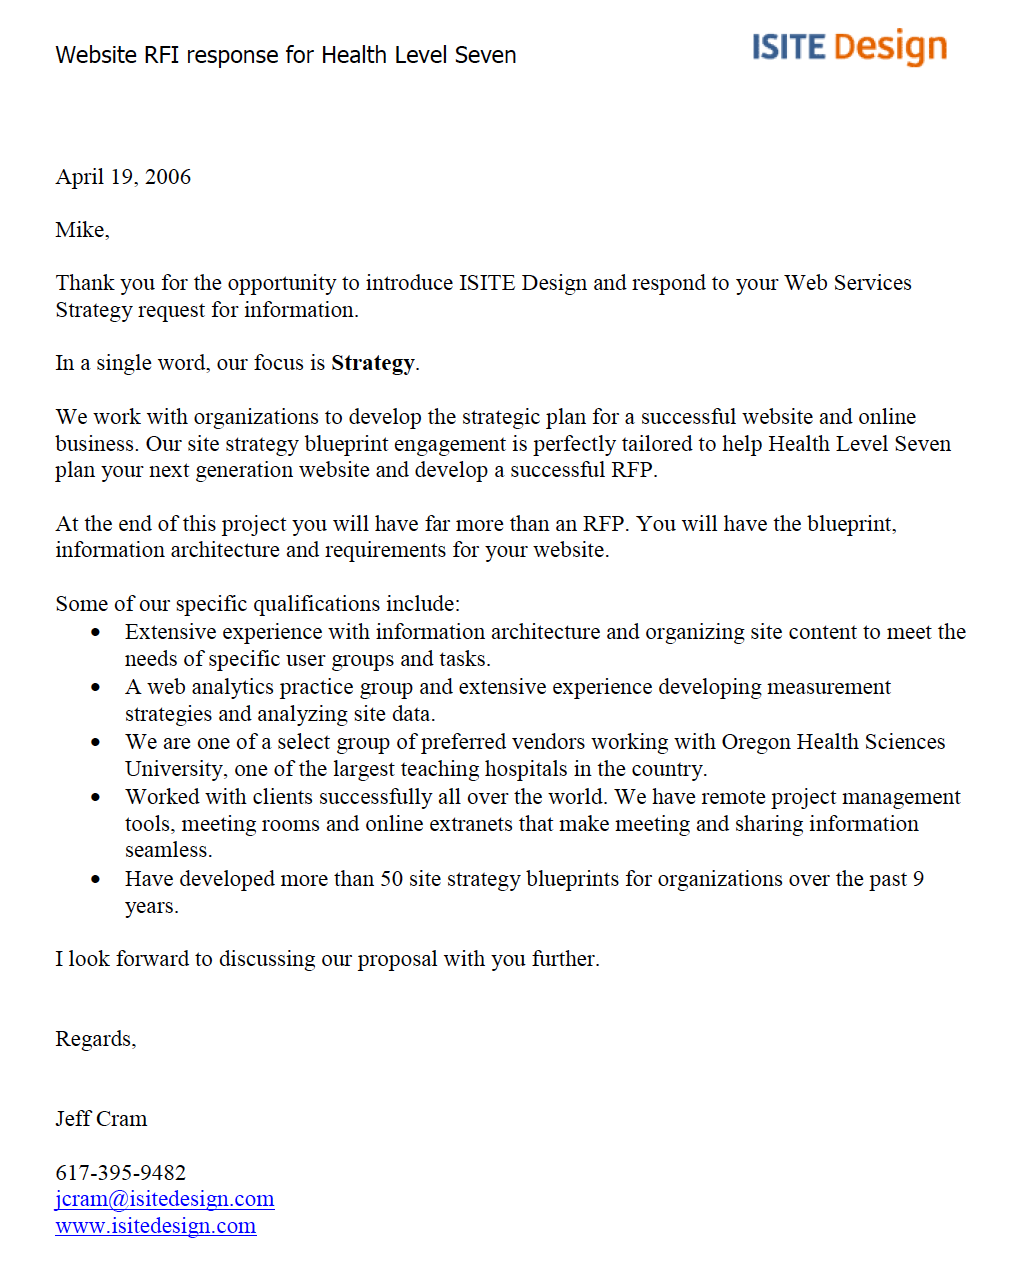 ISITE Proposal Cover Letter Sample